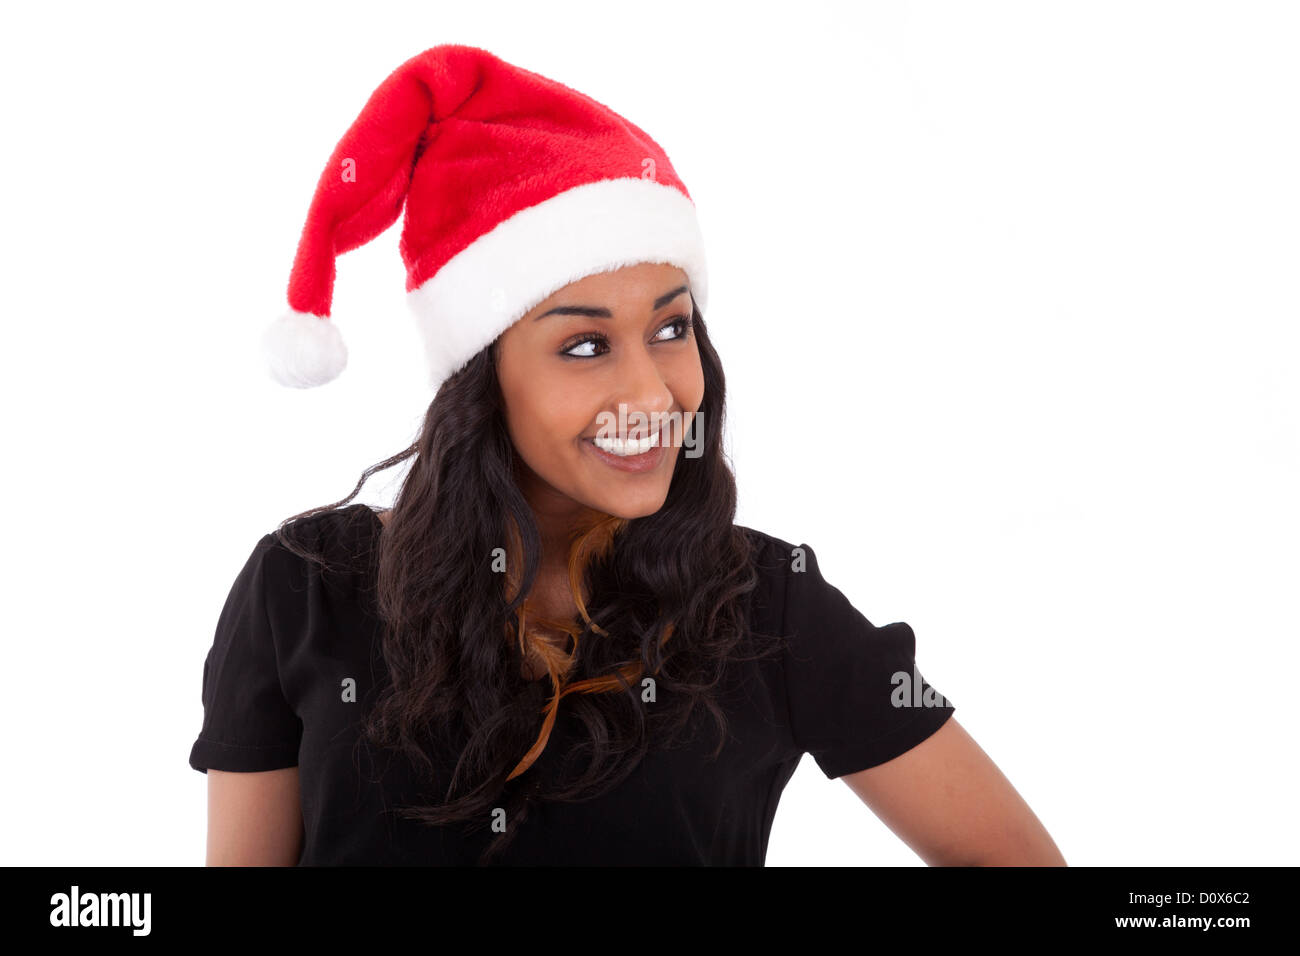 Young African American woman wearing a santa hat, isolated on white background - Stock Image